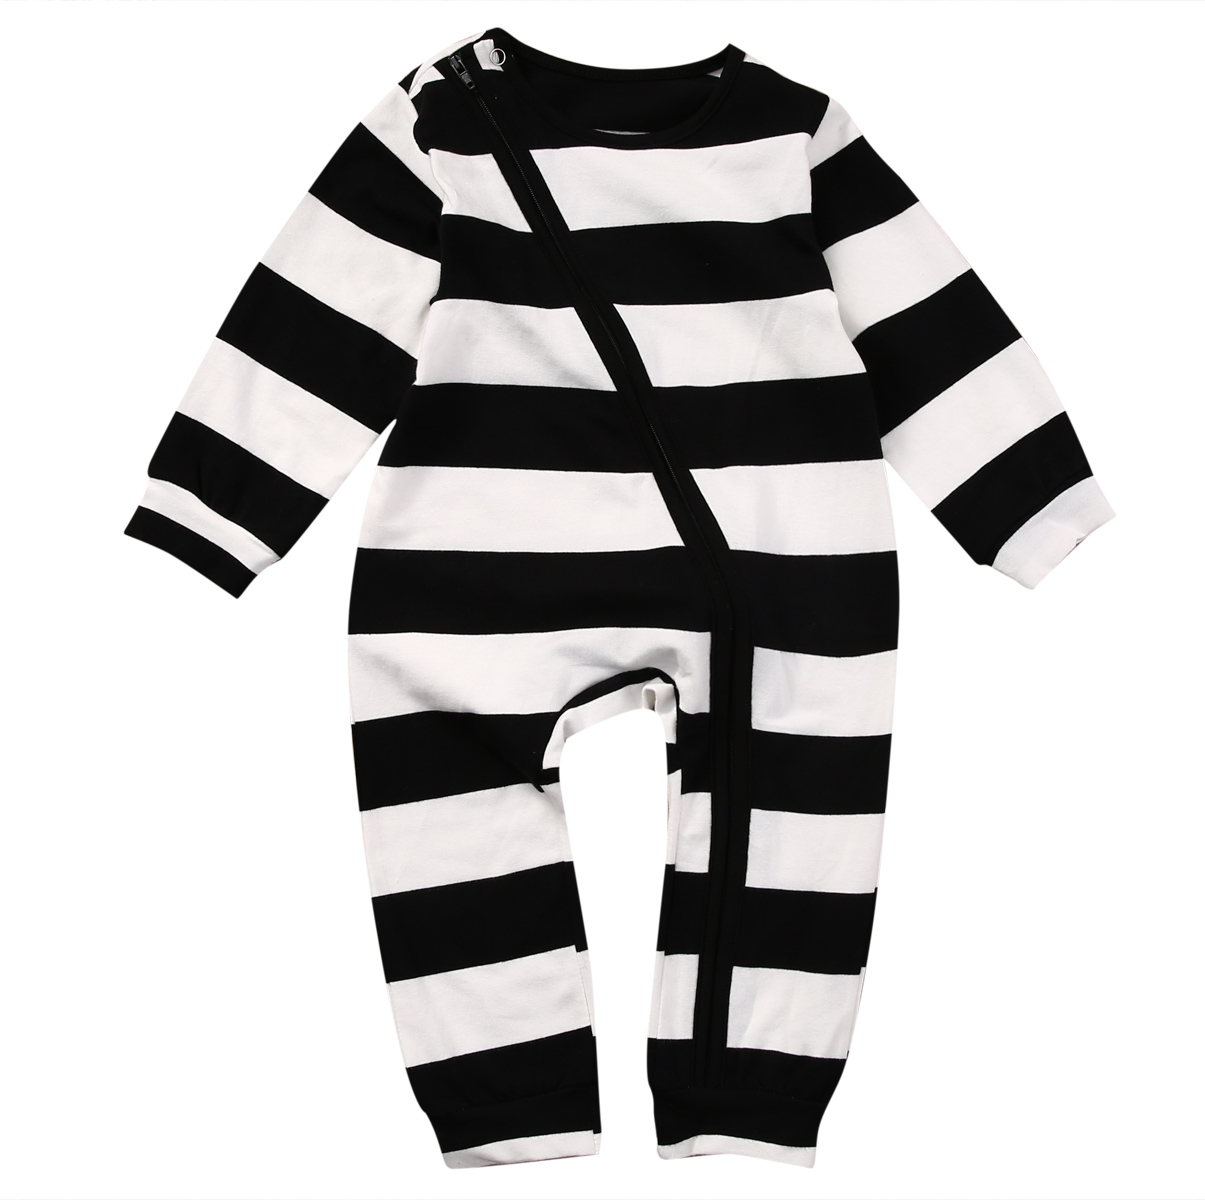 Pudcoco Baby Boys Clothes Zip Up Sleeper Long Sleeve Striped Infant Newborn  Sleep and Play Suit 24c414772